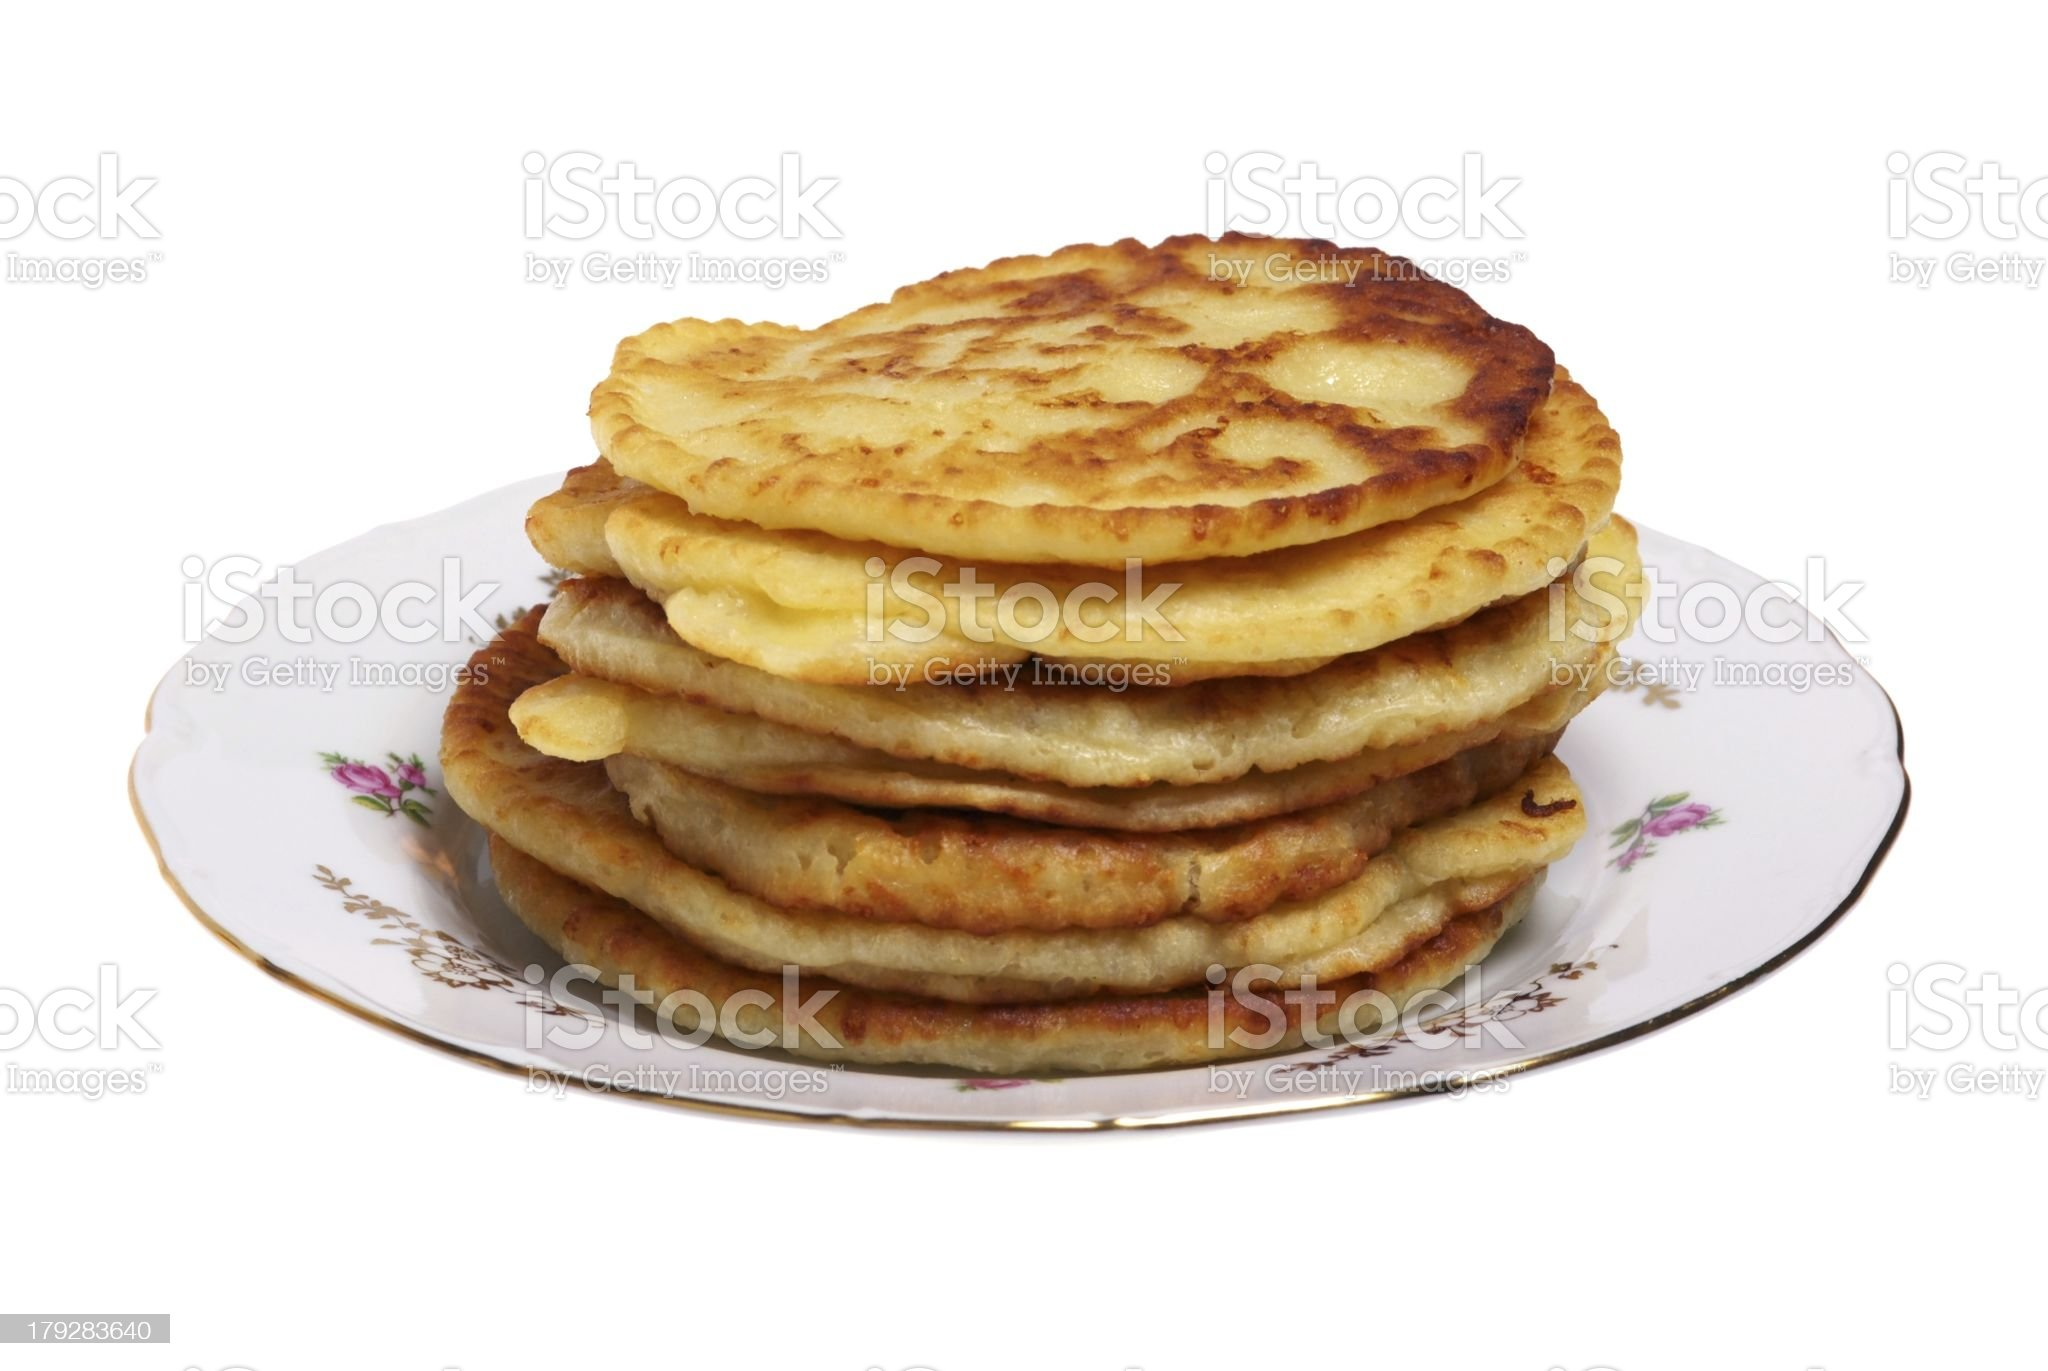 Plate of cheese pancakes royalty-free stock photo